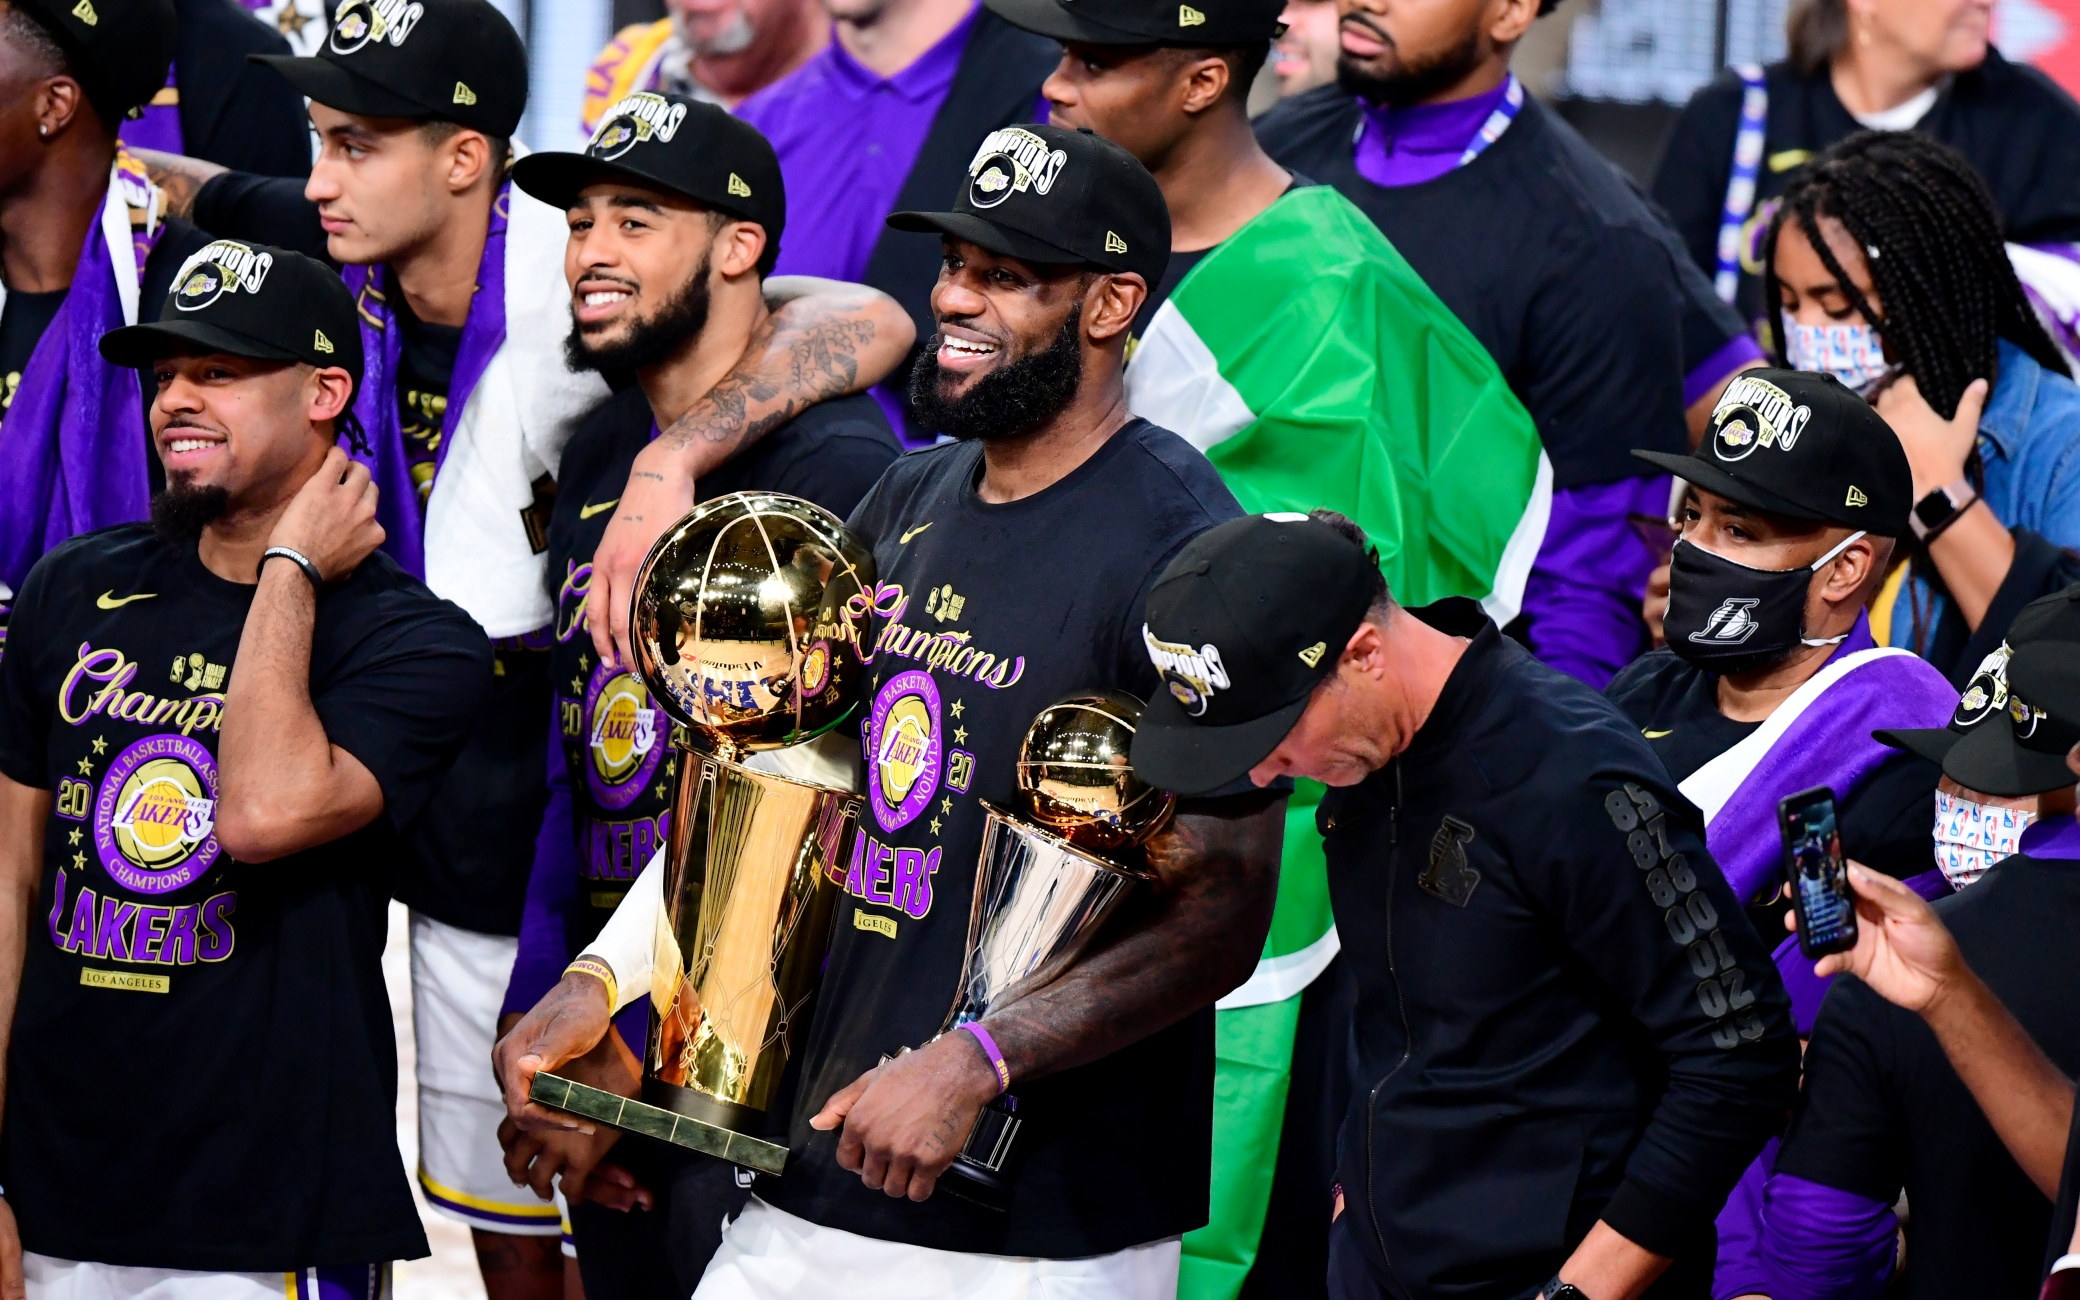 LAKE BUENA VISTA, FLORIDA - OCTOBER 11: LeBron James #23 of the Los Angeles Lakers reacts with his MVP trophy and Finals trophy after winning the 2020 NBA Championship over the Miami Heat in Game Six of the 2020 NBA Finals at AdventHealth Arena at the ESPN Wide World Of Sports Complex on October 11, 2020 in Lake Buena Vista, Florida. NOTE TO USER: User expressly acknowledges and agrees that, by downloading and or using this photograph, User is consenting to the terms and conditions of the Getty Images License Agreement.  (Photo by Douglas P. DeFelice/Getty Images)